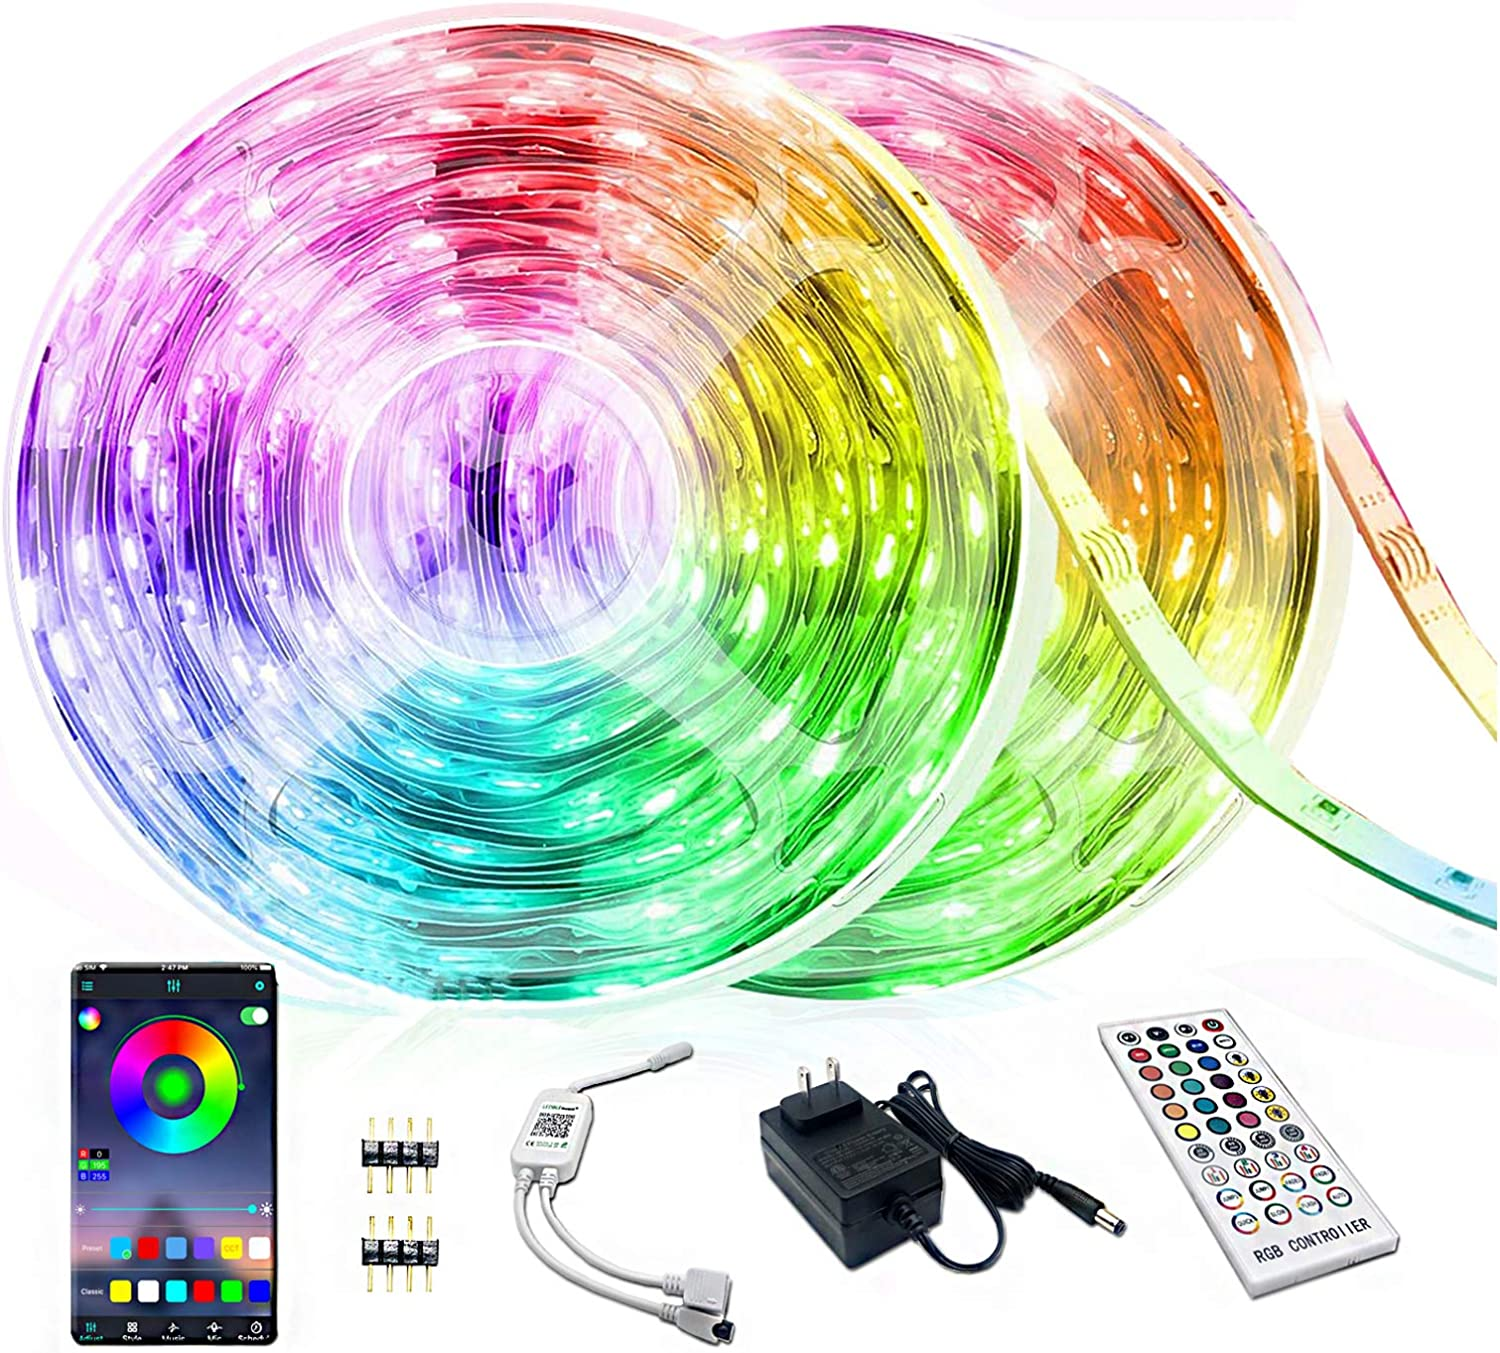 Smart LED Strip Lights Bluetooth 32.8FT, YUMQUA RGB Led Light Strip Music Sync Color Changing, Built-in Mic, App Control + Remote, 5050 300 LEDs Tape Lights for Bedroom, TV, Party and Home